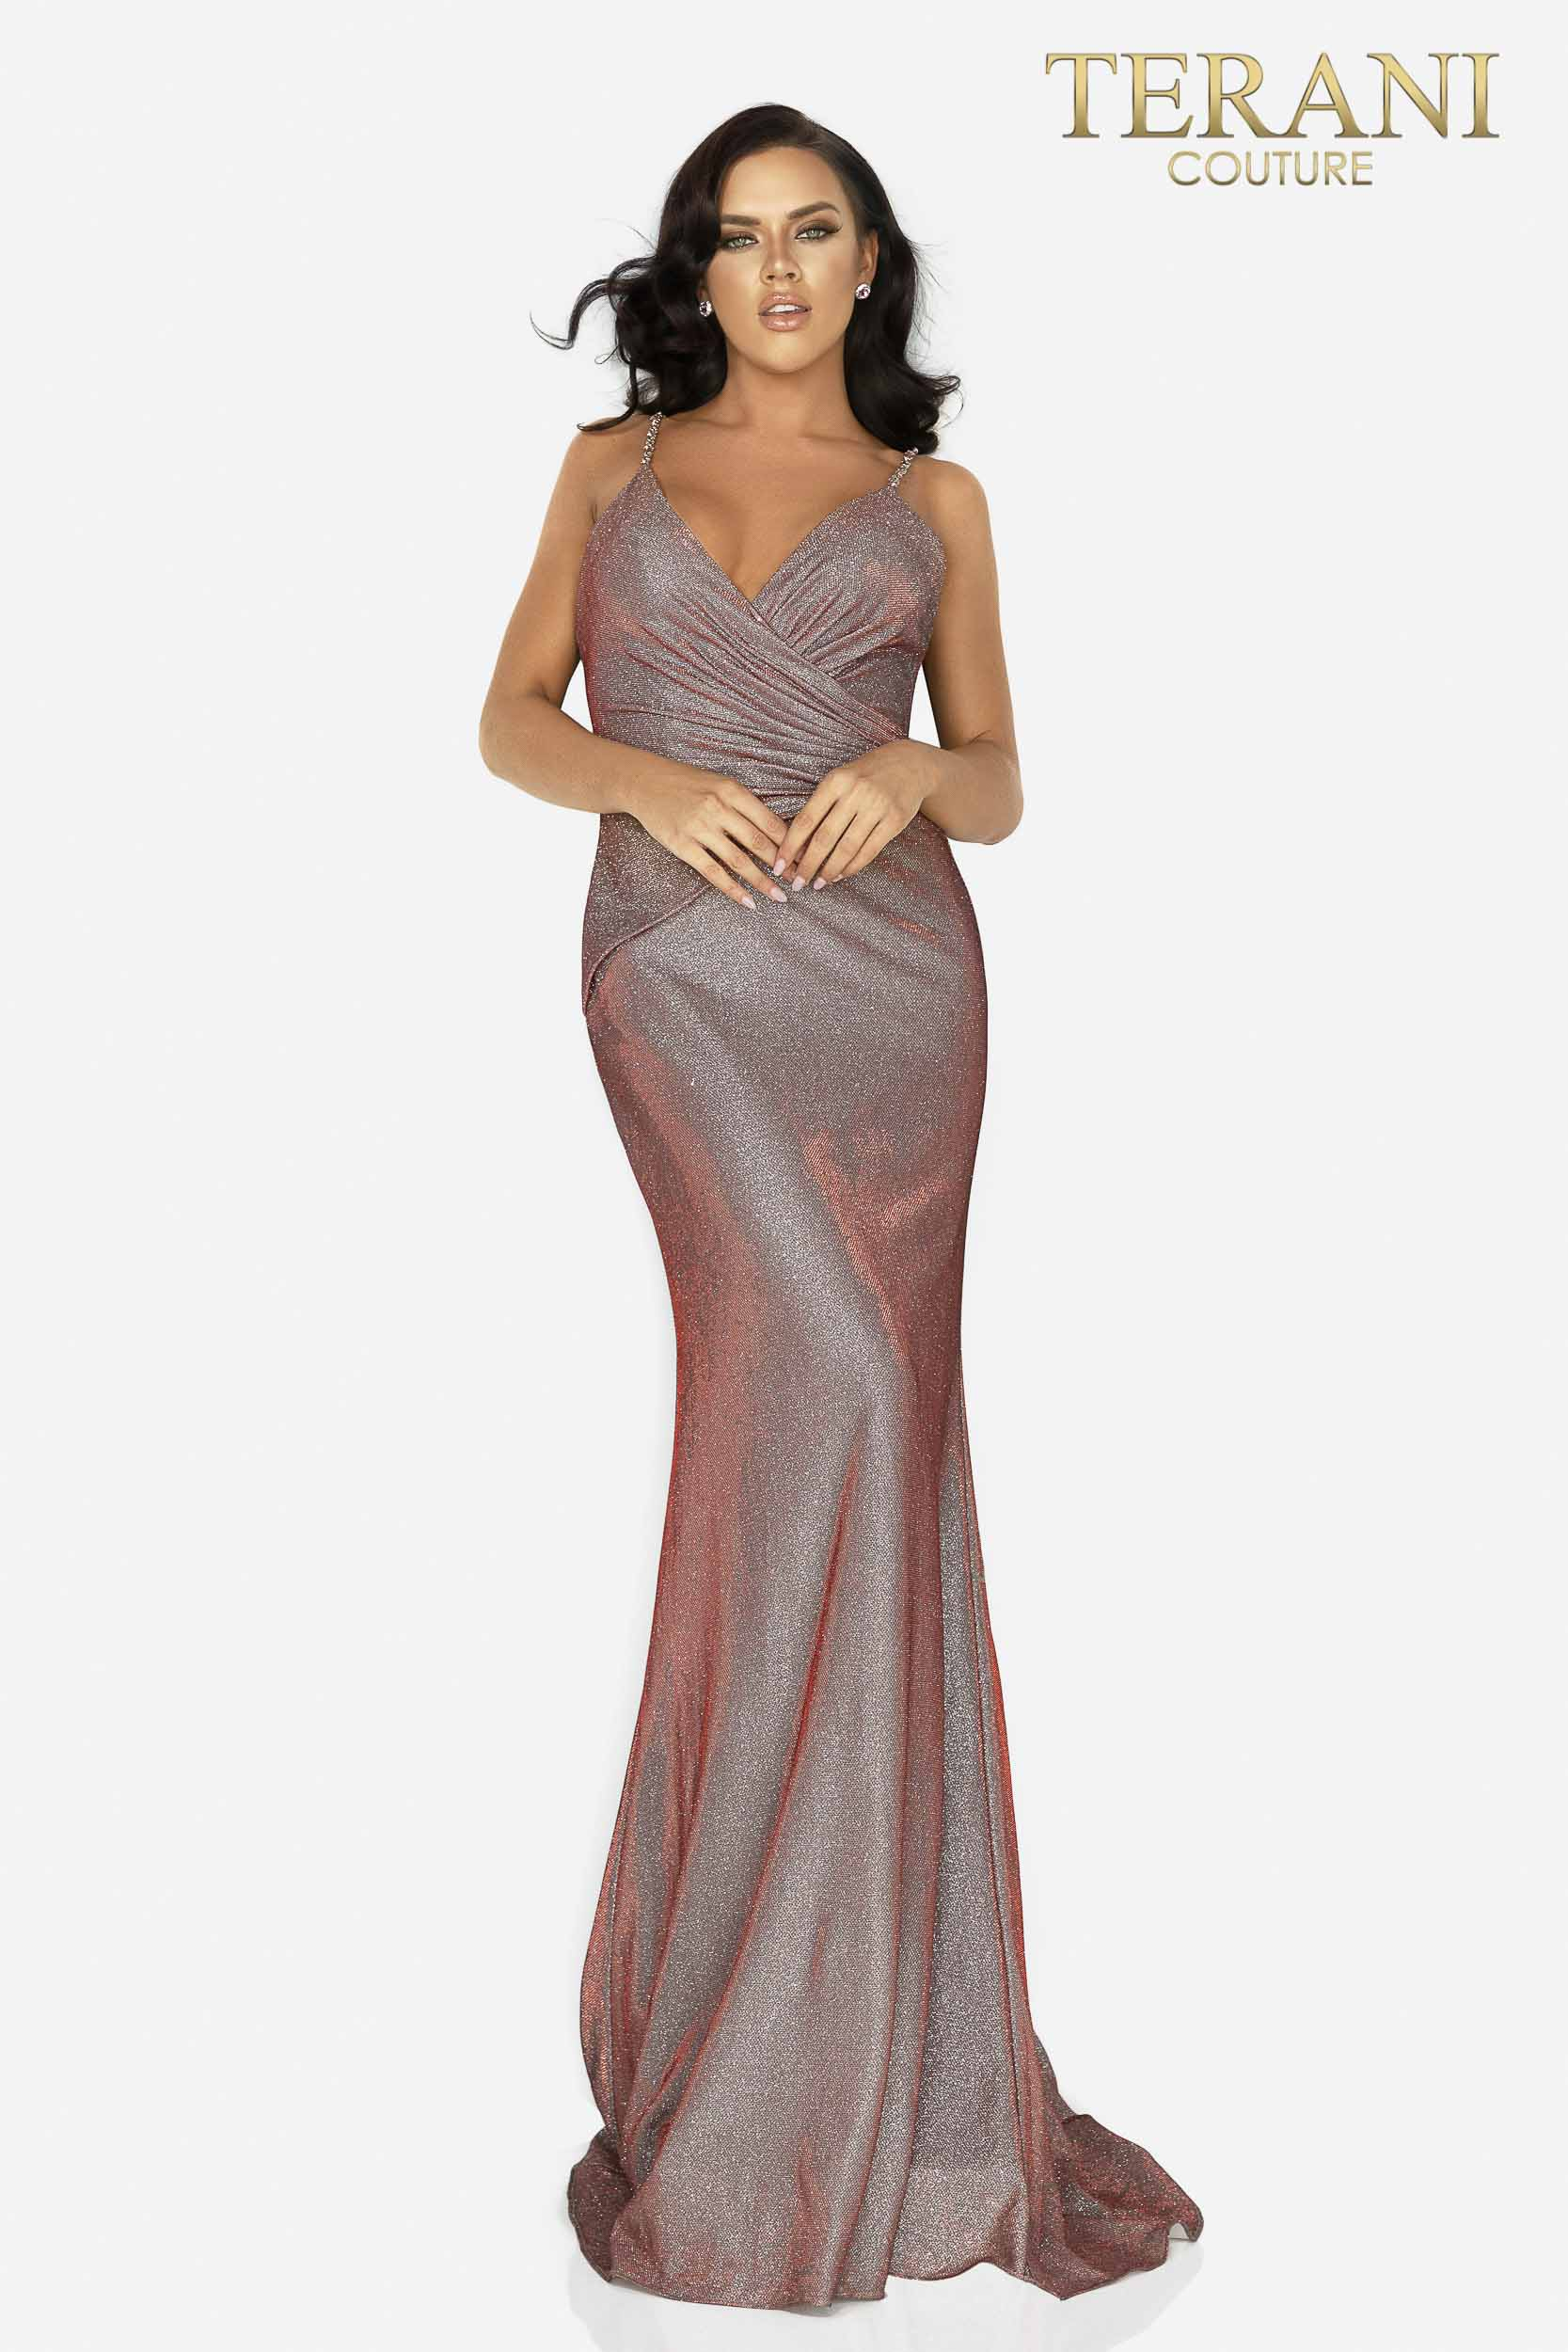 Terani Couture Coral Gold Prom sexy glitter metallic long dress – Style number is 2011P1117